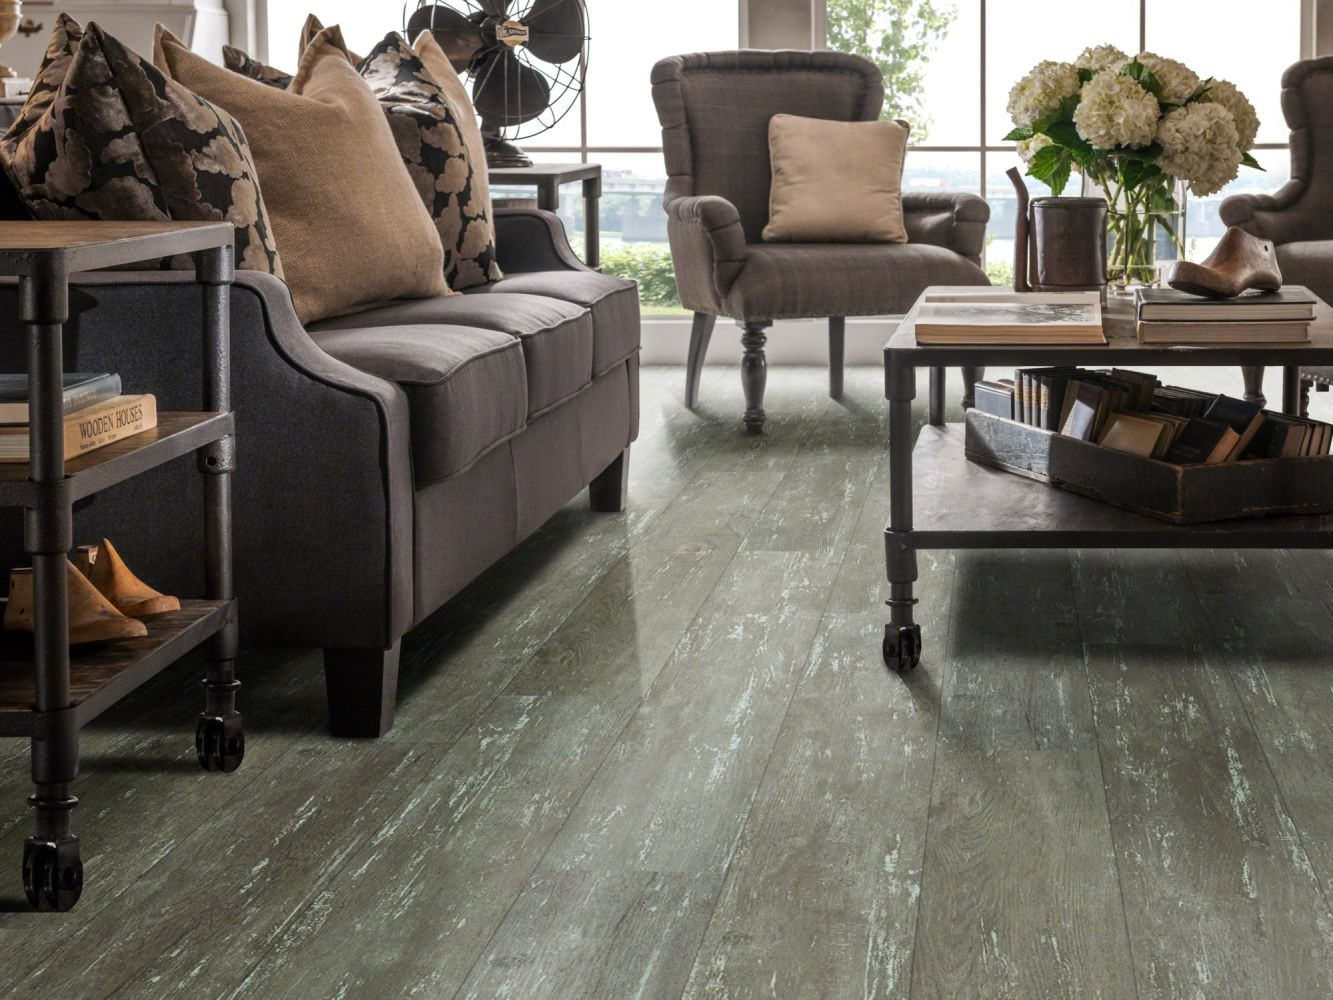 Shaw Floors Resilient Residential Alto Plus Plank Leone 00538_2576V